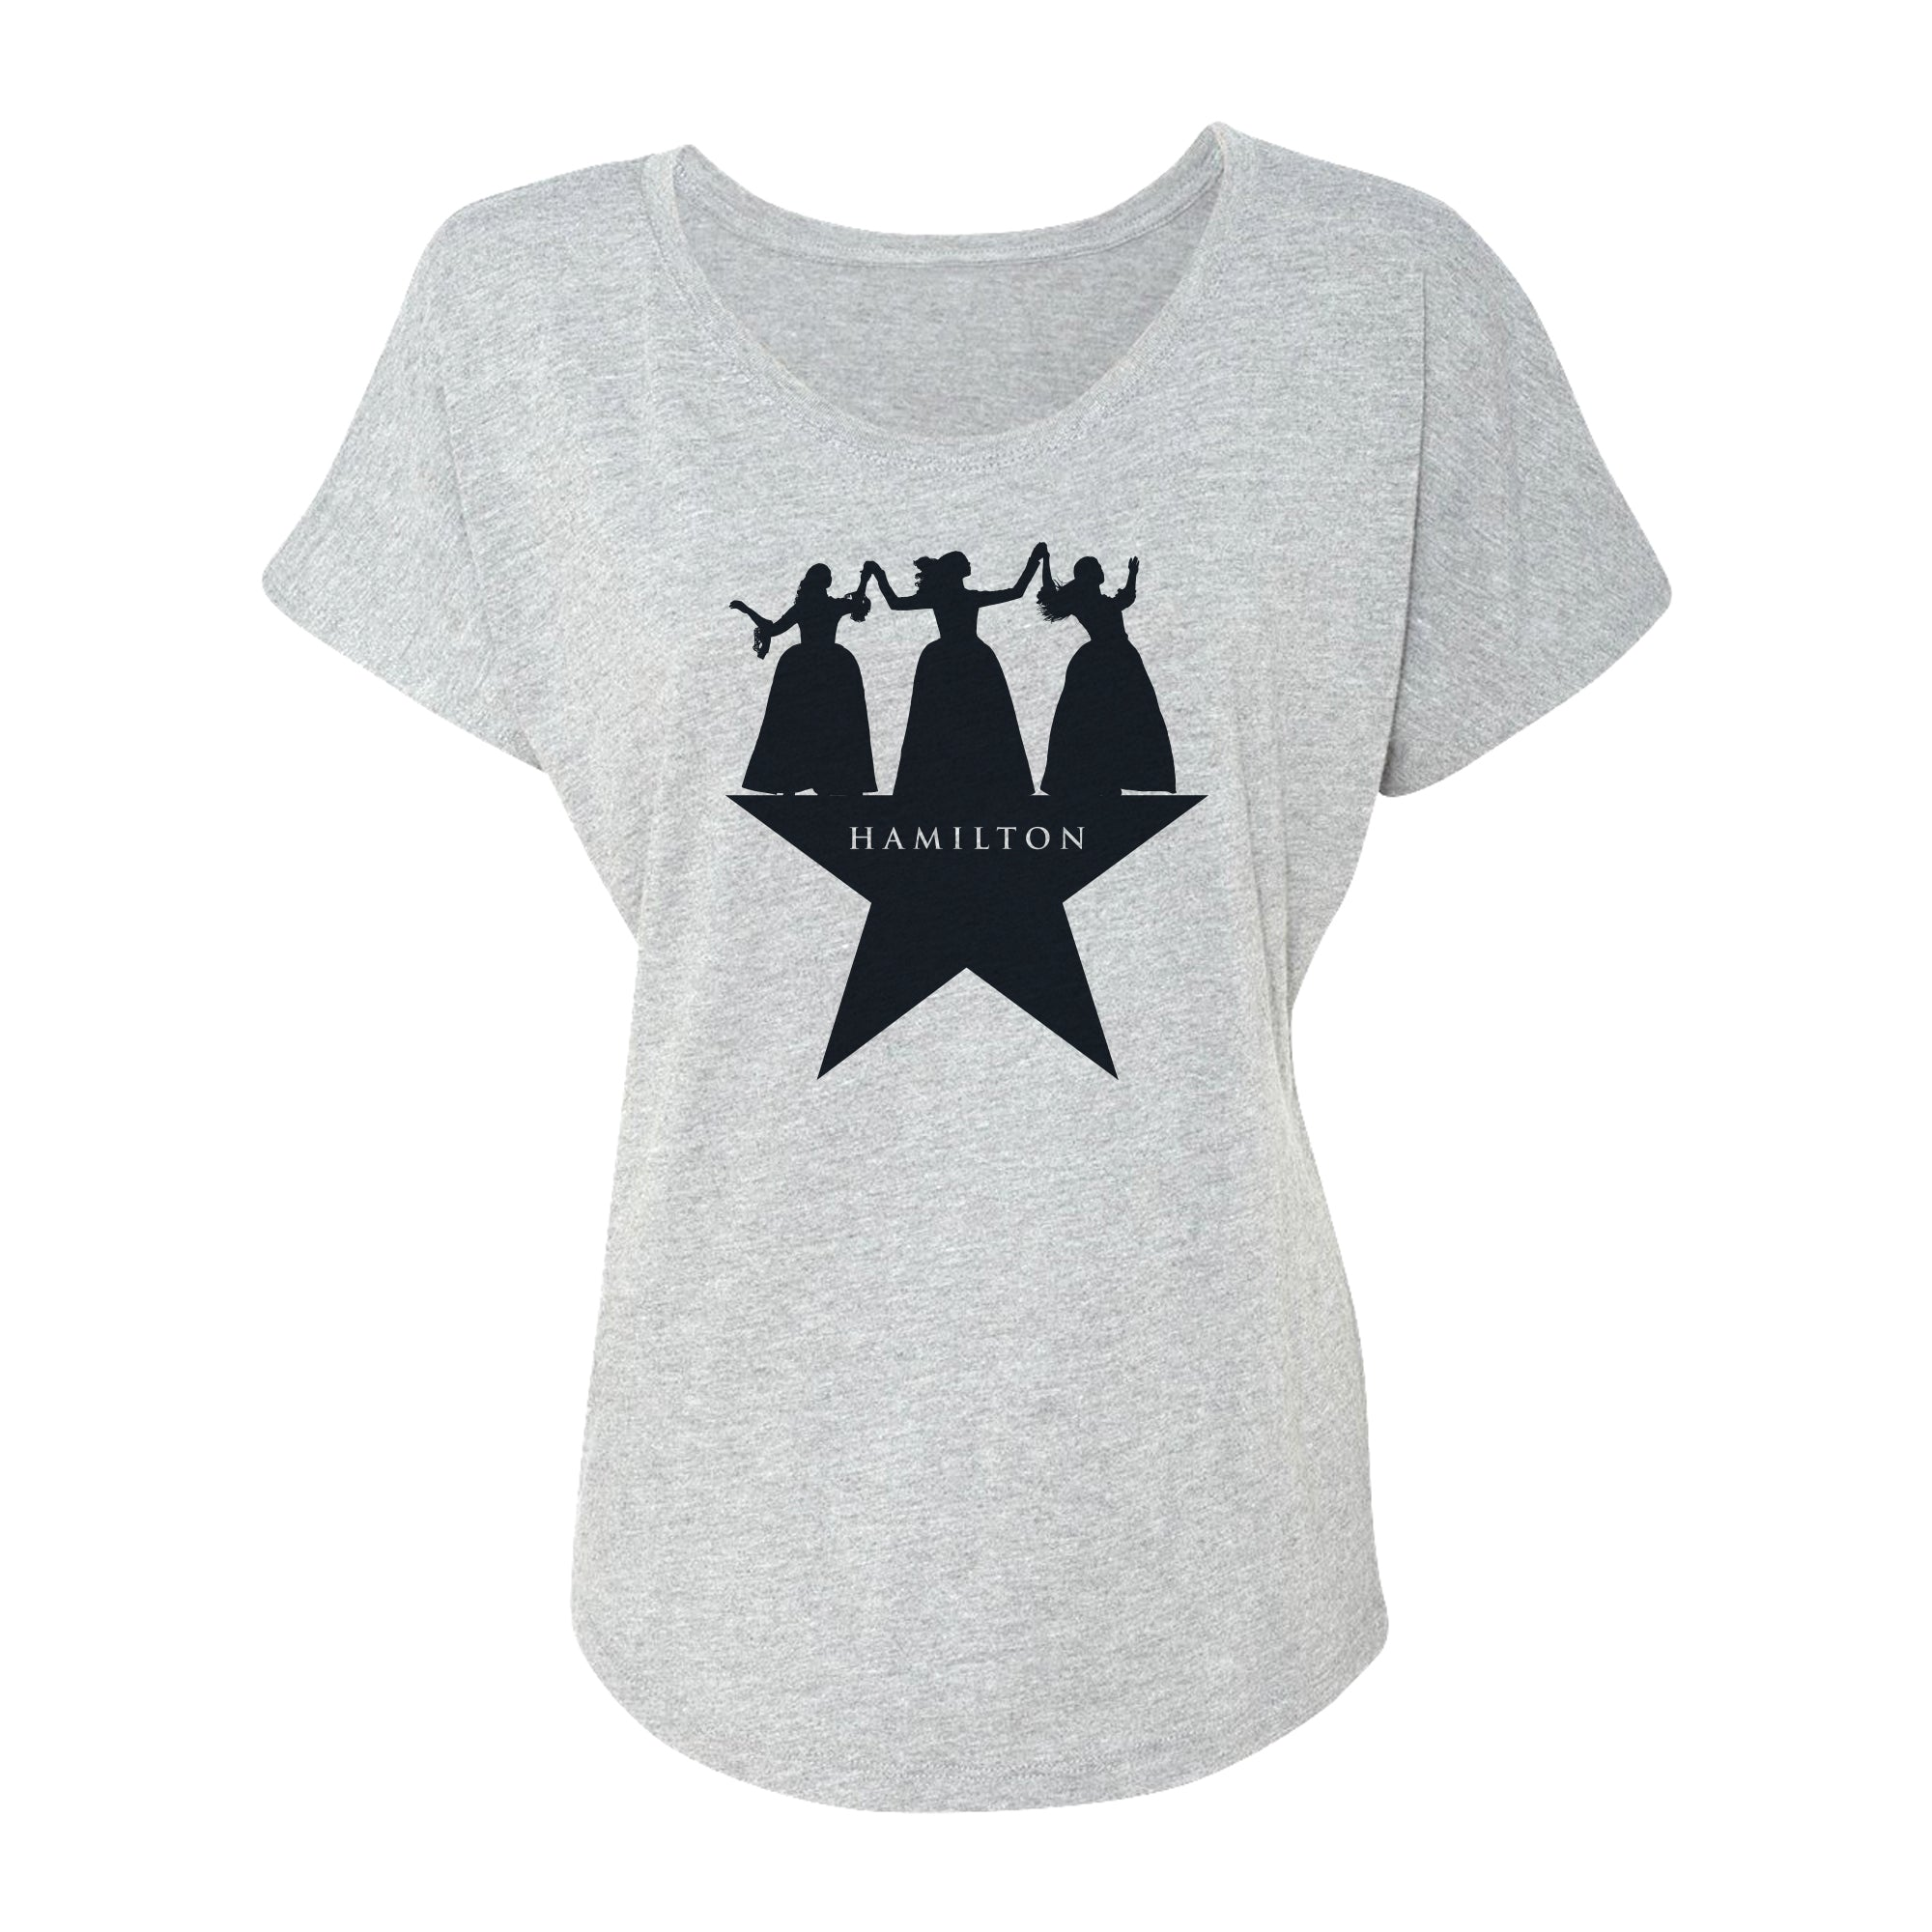 HAMILTON Dancing Ladies T-Shirt Image